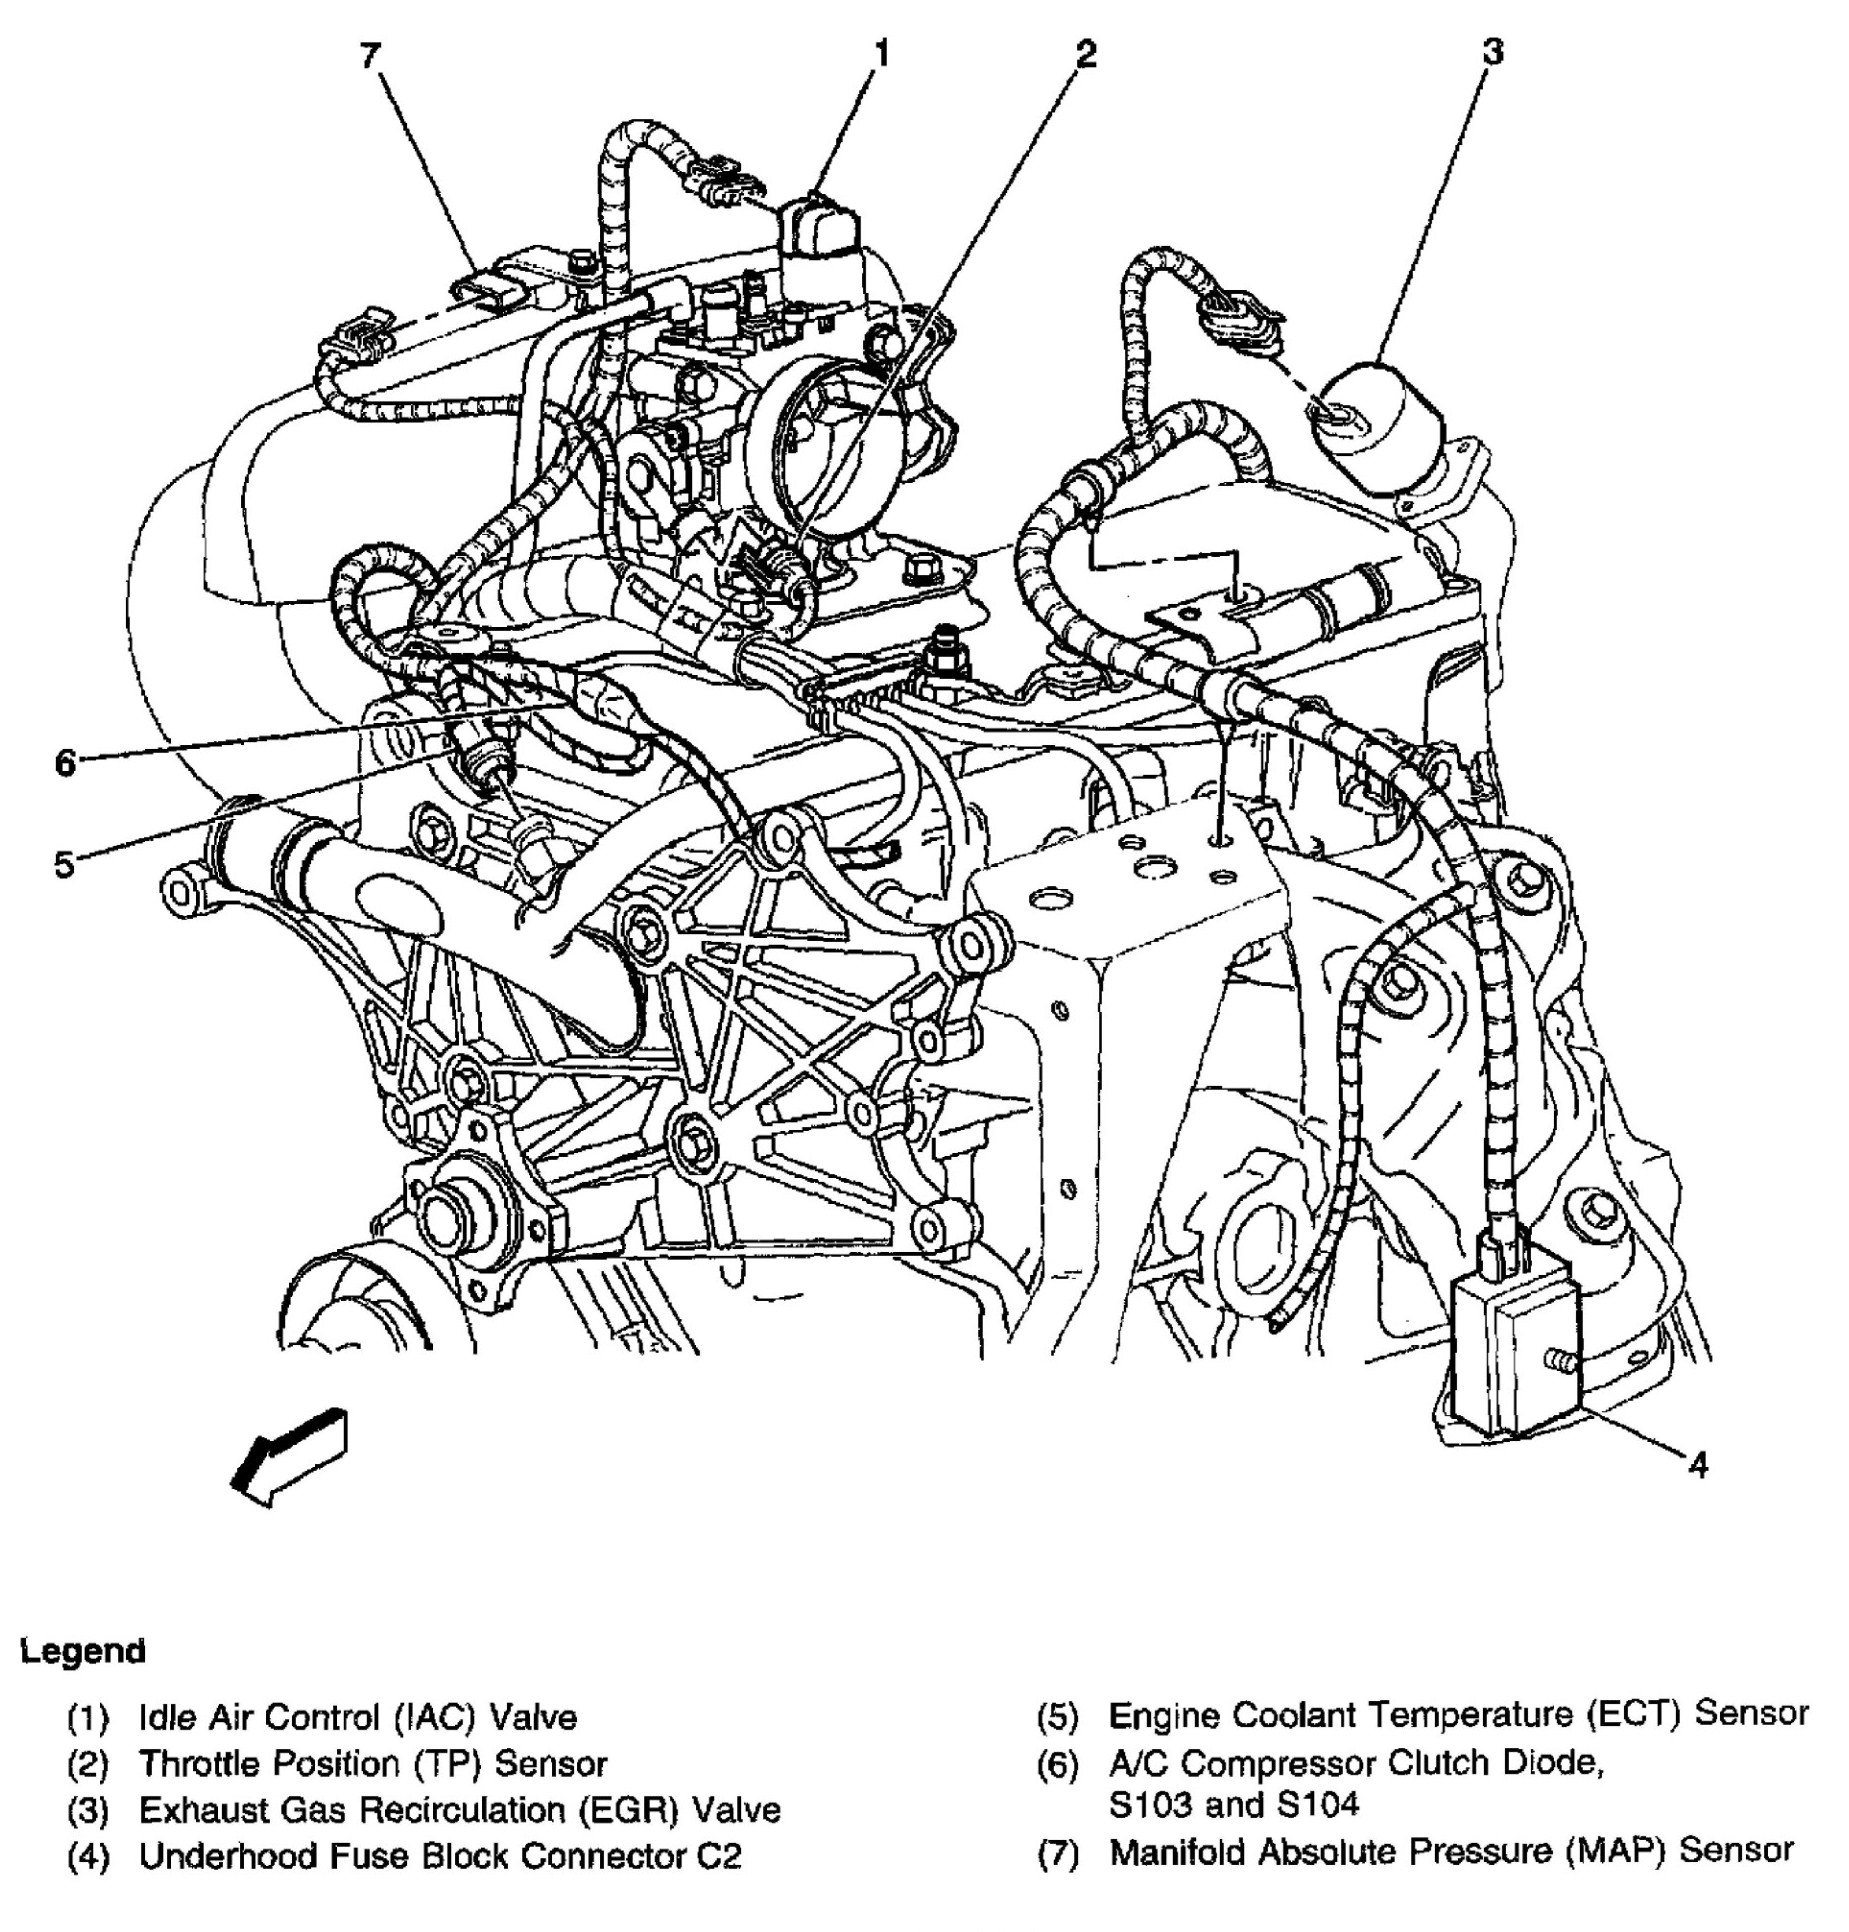 22l Engine Diagram Electrical Wiring Diagrams Chevrolet 3 4 2 2l S10 Free For You U2022 99 Camry